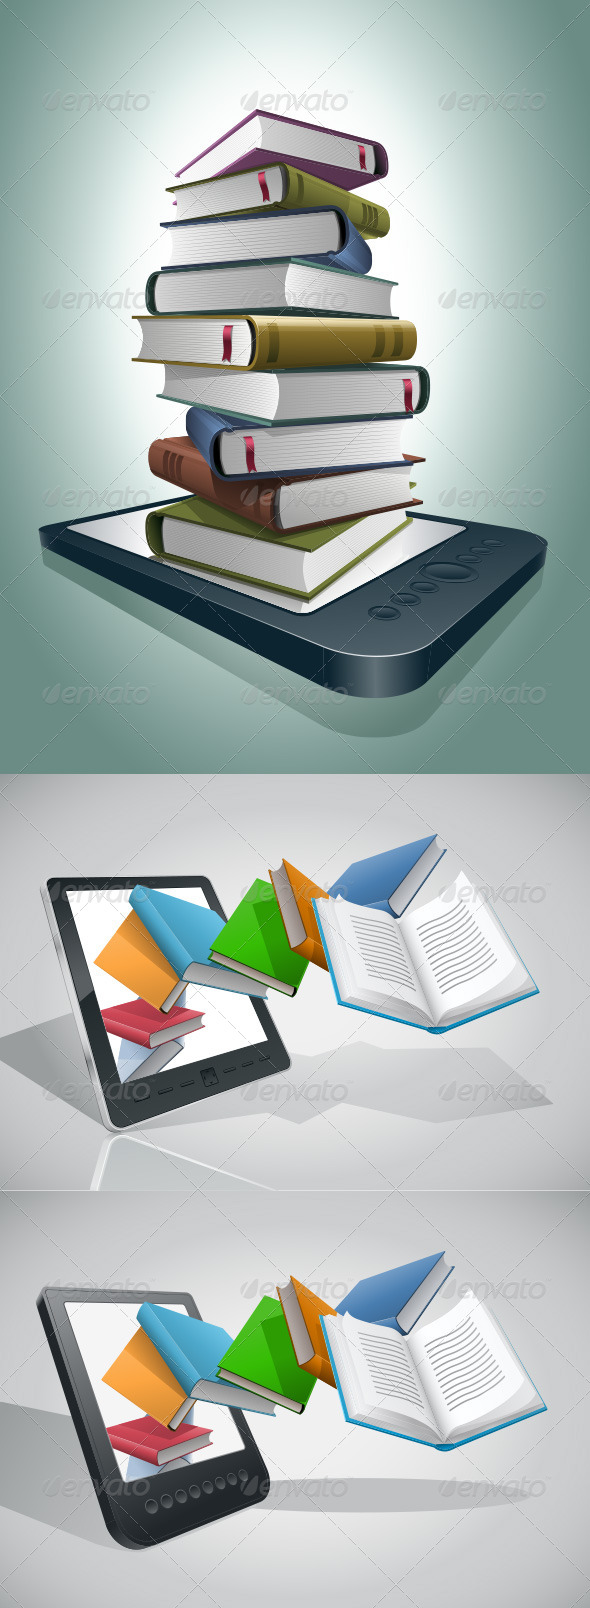 GraphicRiver E-book Reader And Books Collection 4177504